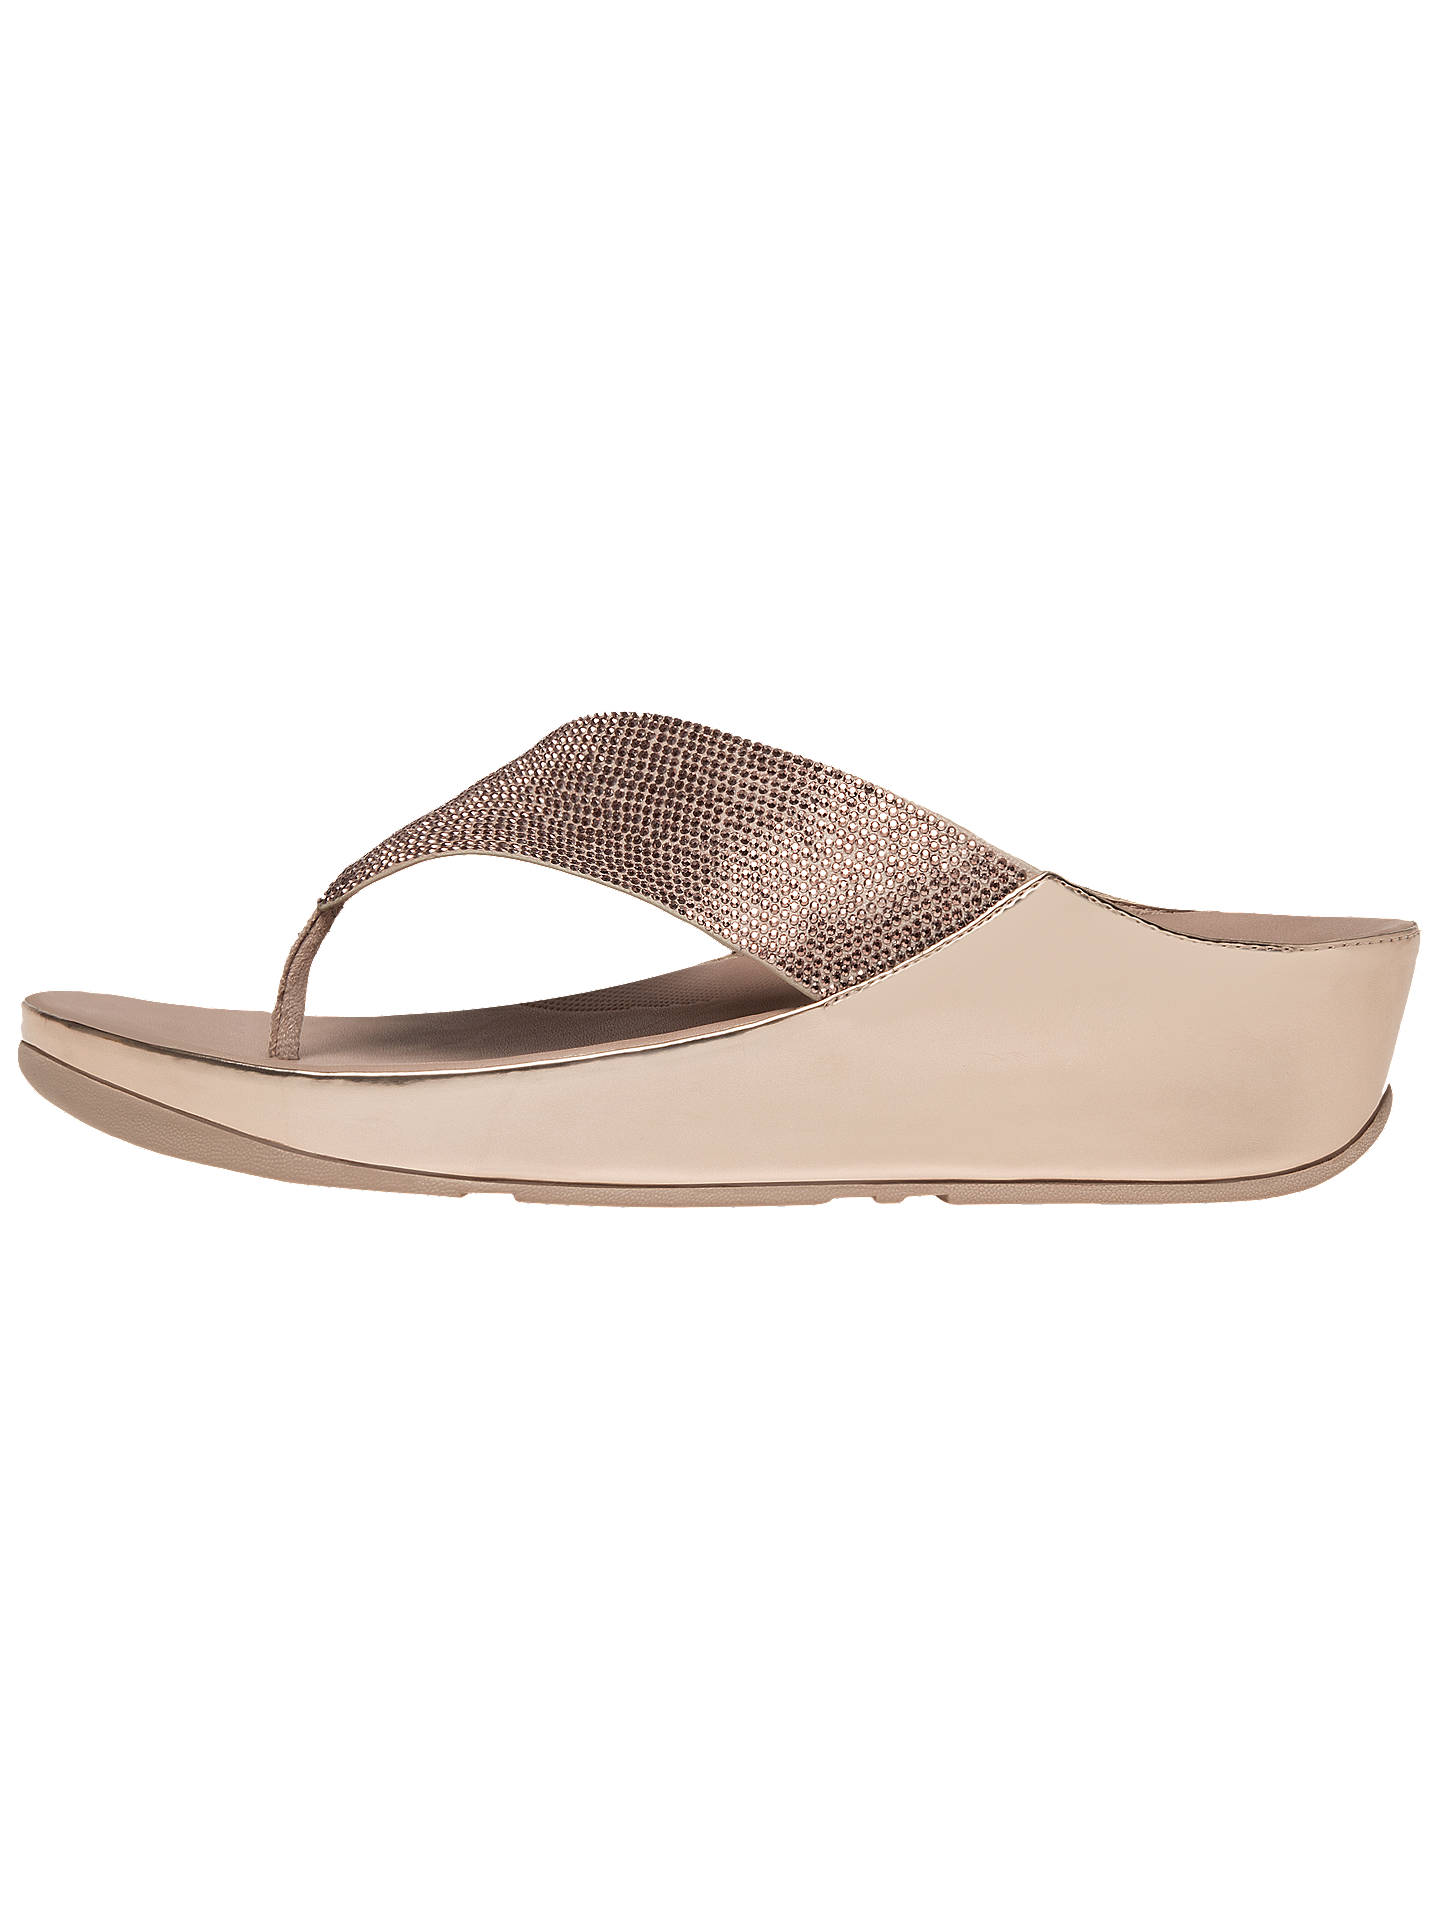 0efe29751d7b6 FitFlop Crystall Toe Post Sandals at John Lewis   Partners